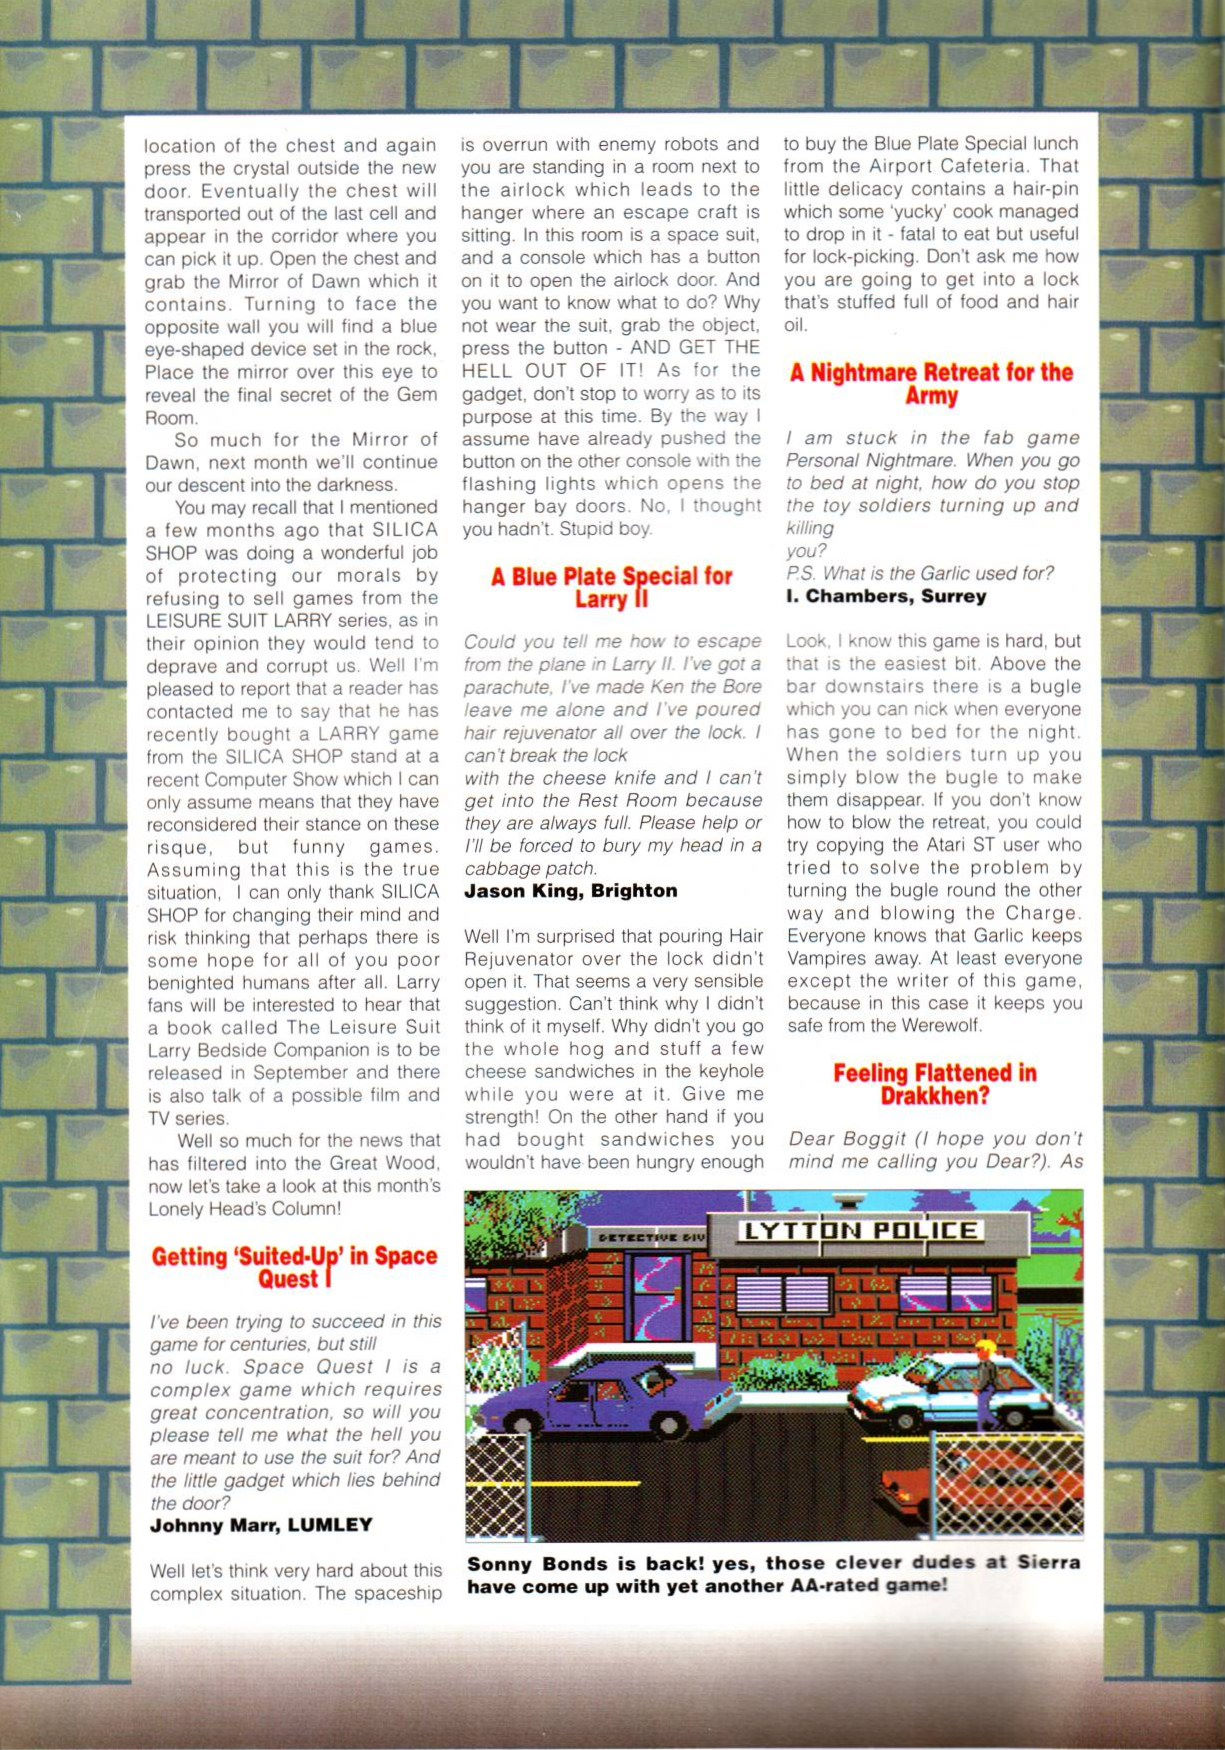 Dungeon Master Article published in British magazine 'Amiga Action', Issue #12 September 1990, Page 14